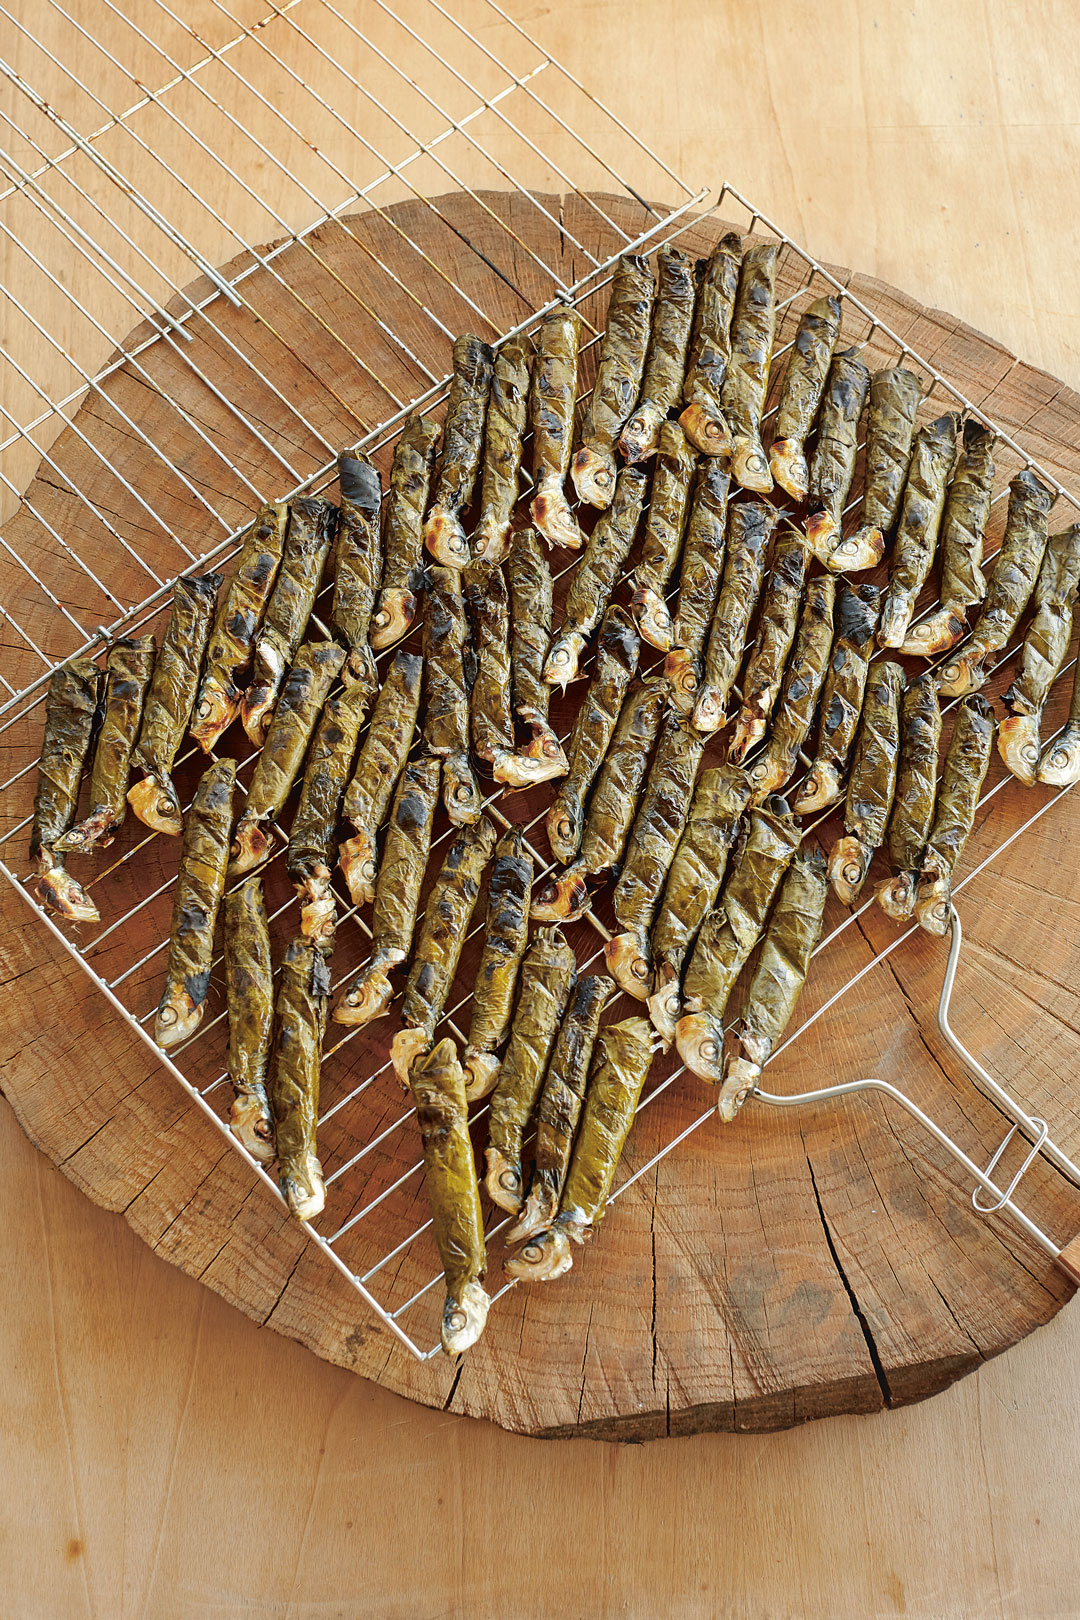 Sardines grilled in vine leaves, from The Turkish Cookbook